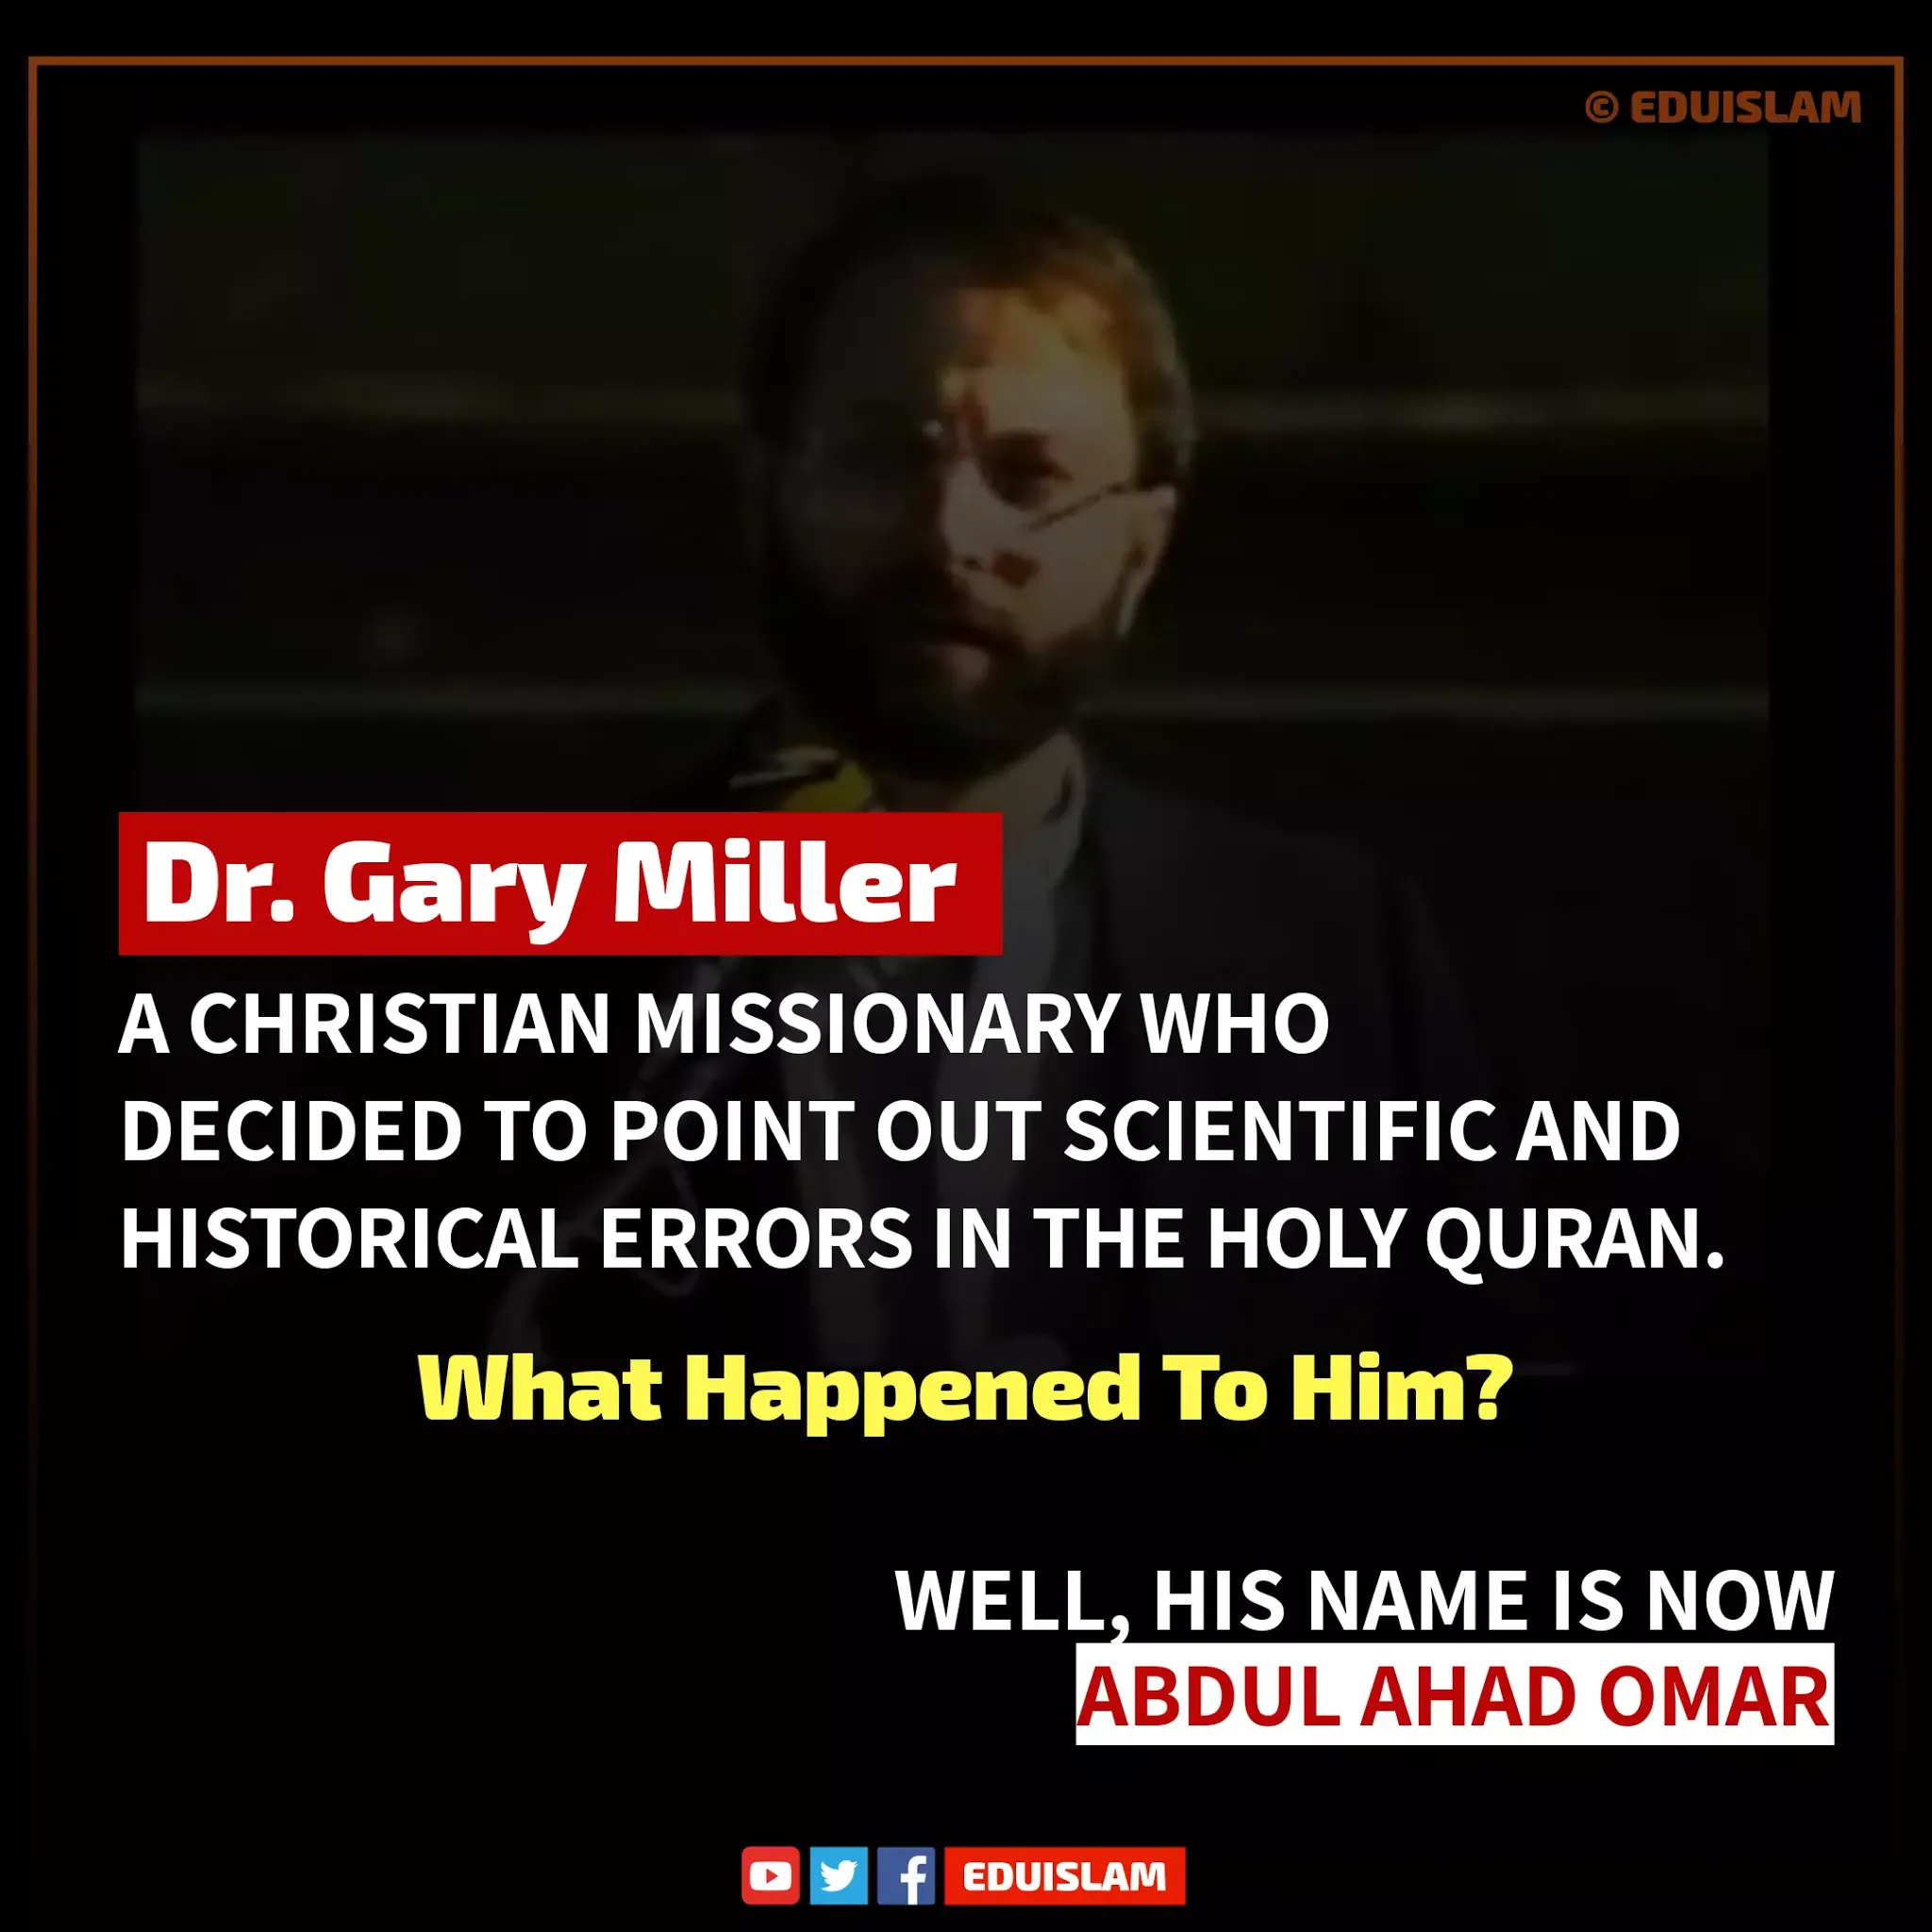 Dr Gary Miller conversion to Islam